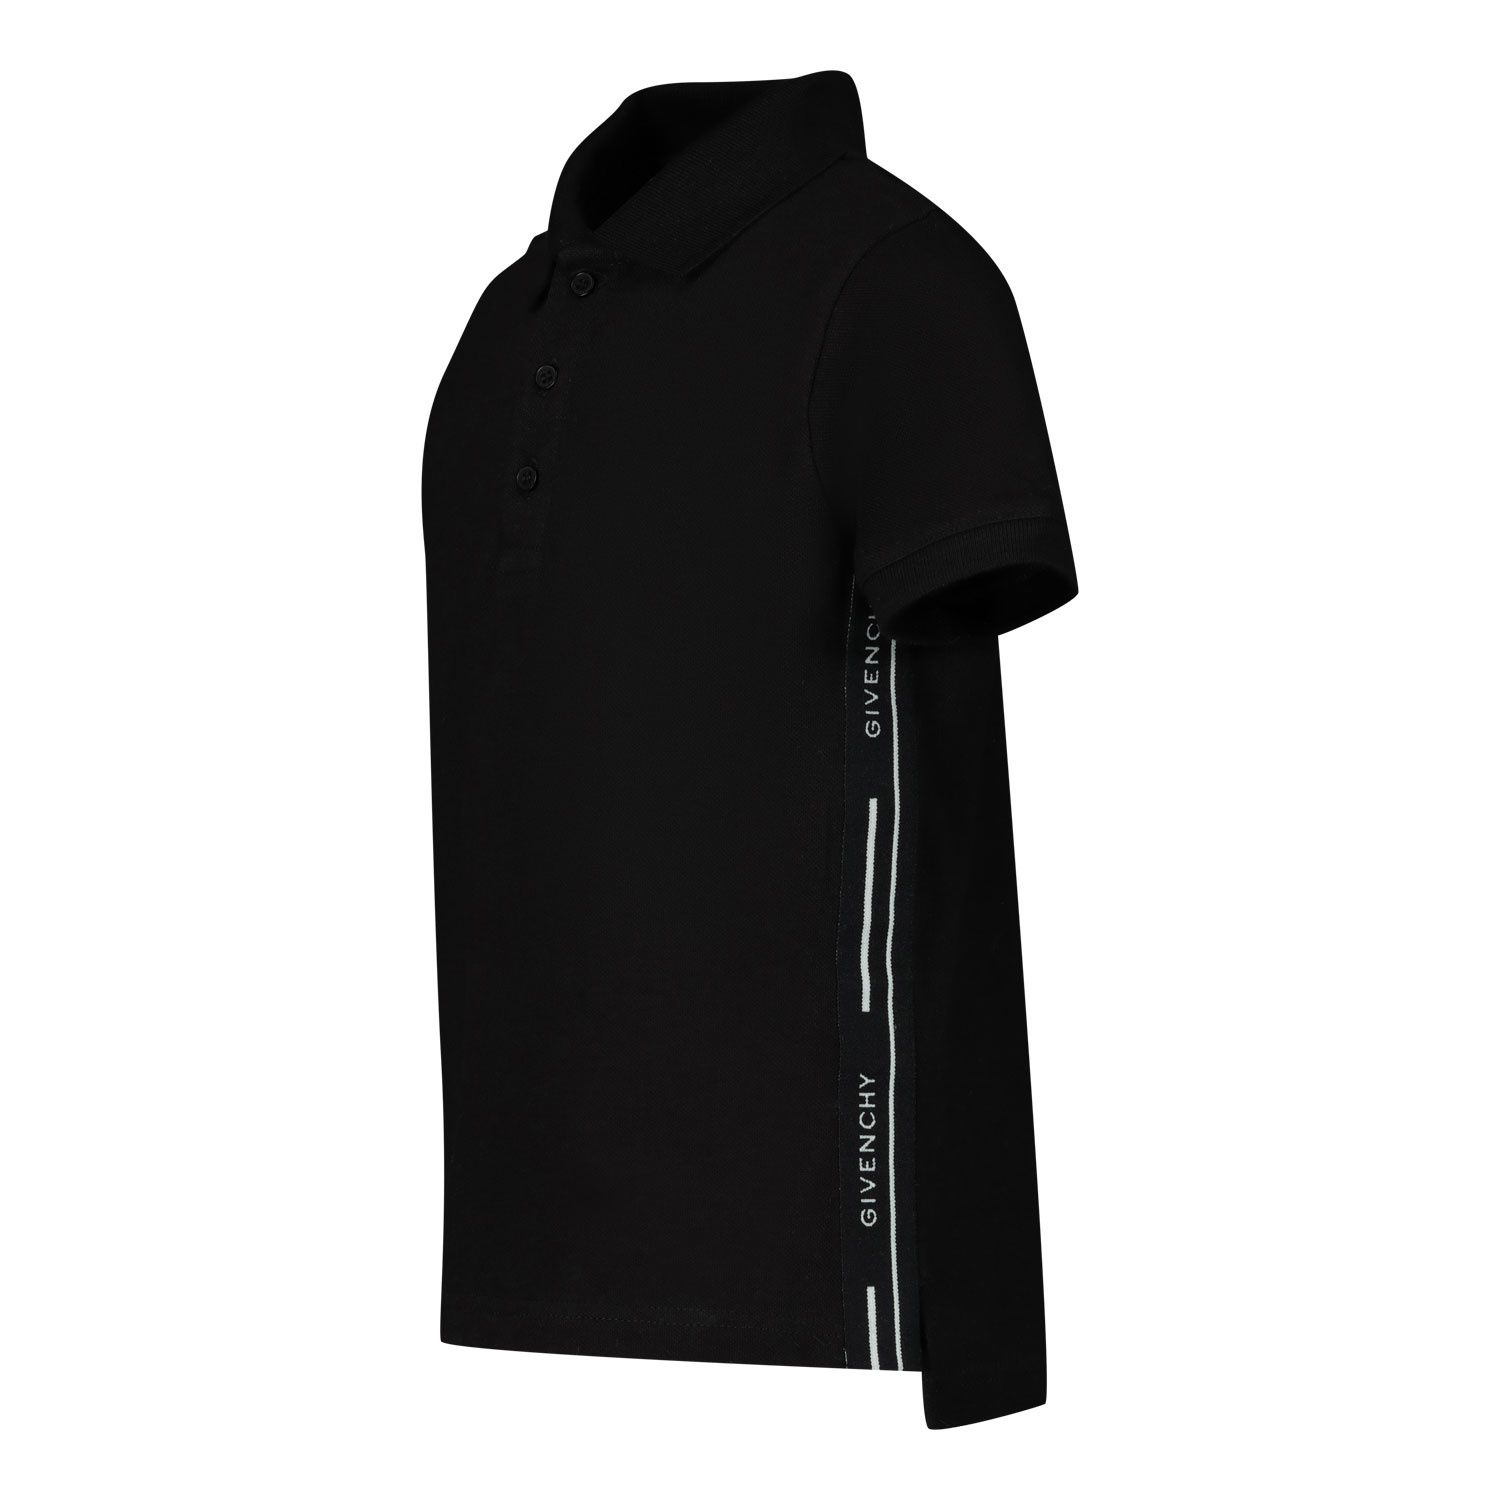 Picture of Givenchy H05138 baby poloshirt black